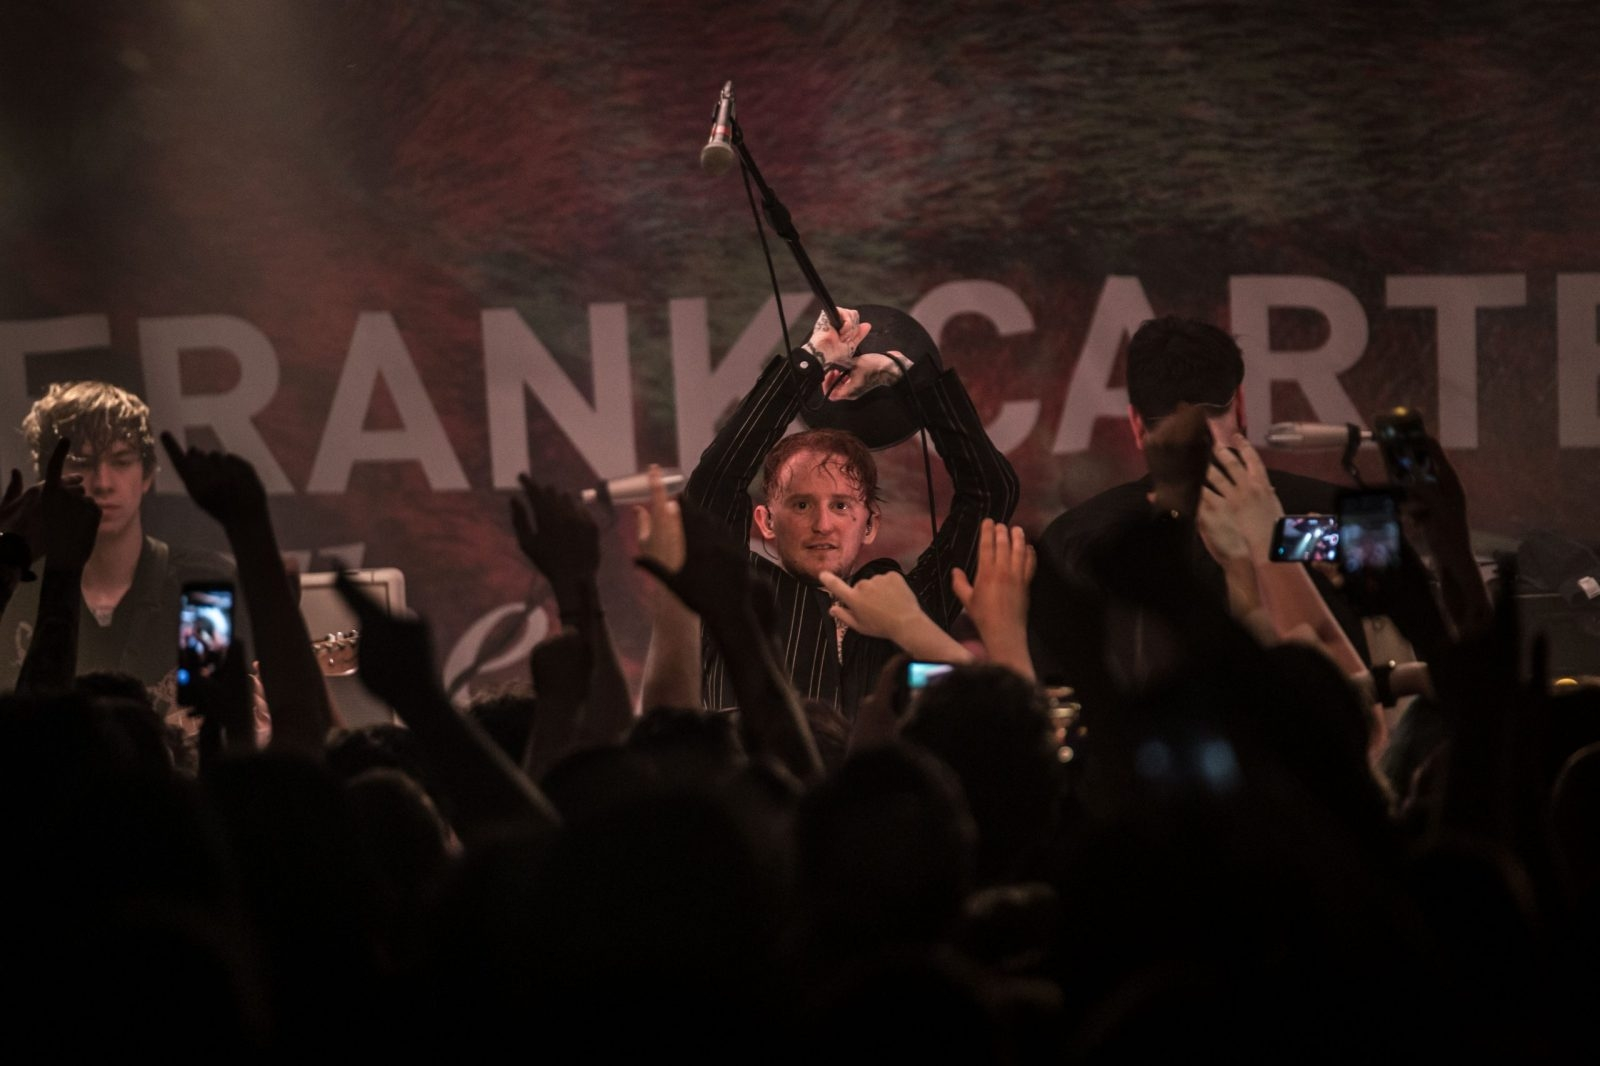 Frank Carter & The Rattlesnakes @ Oh Yeah Music Centre 15